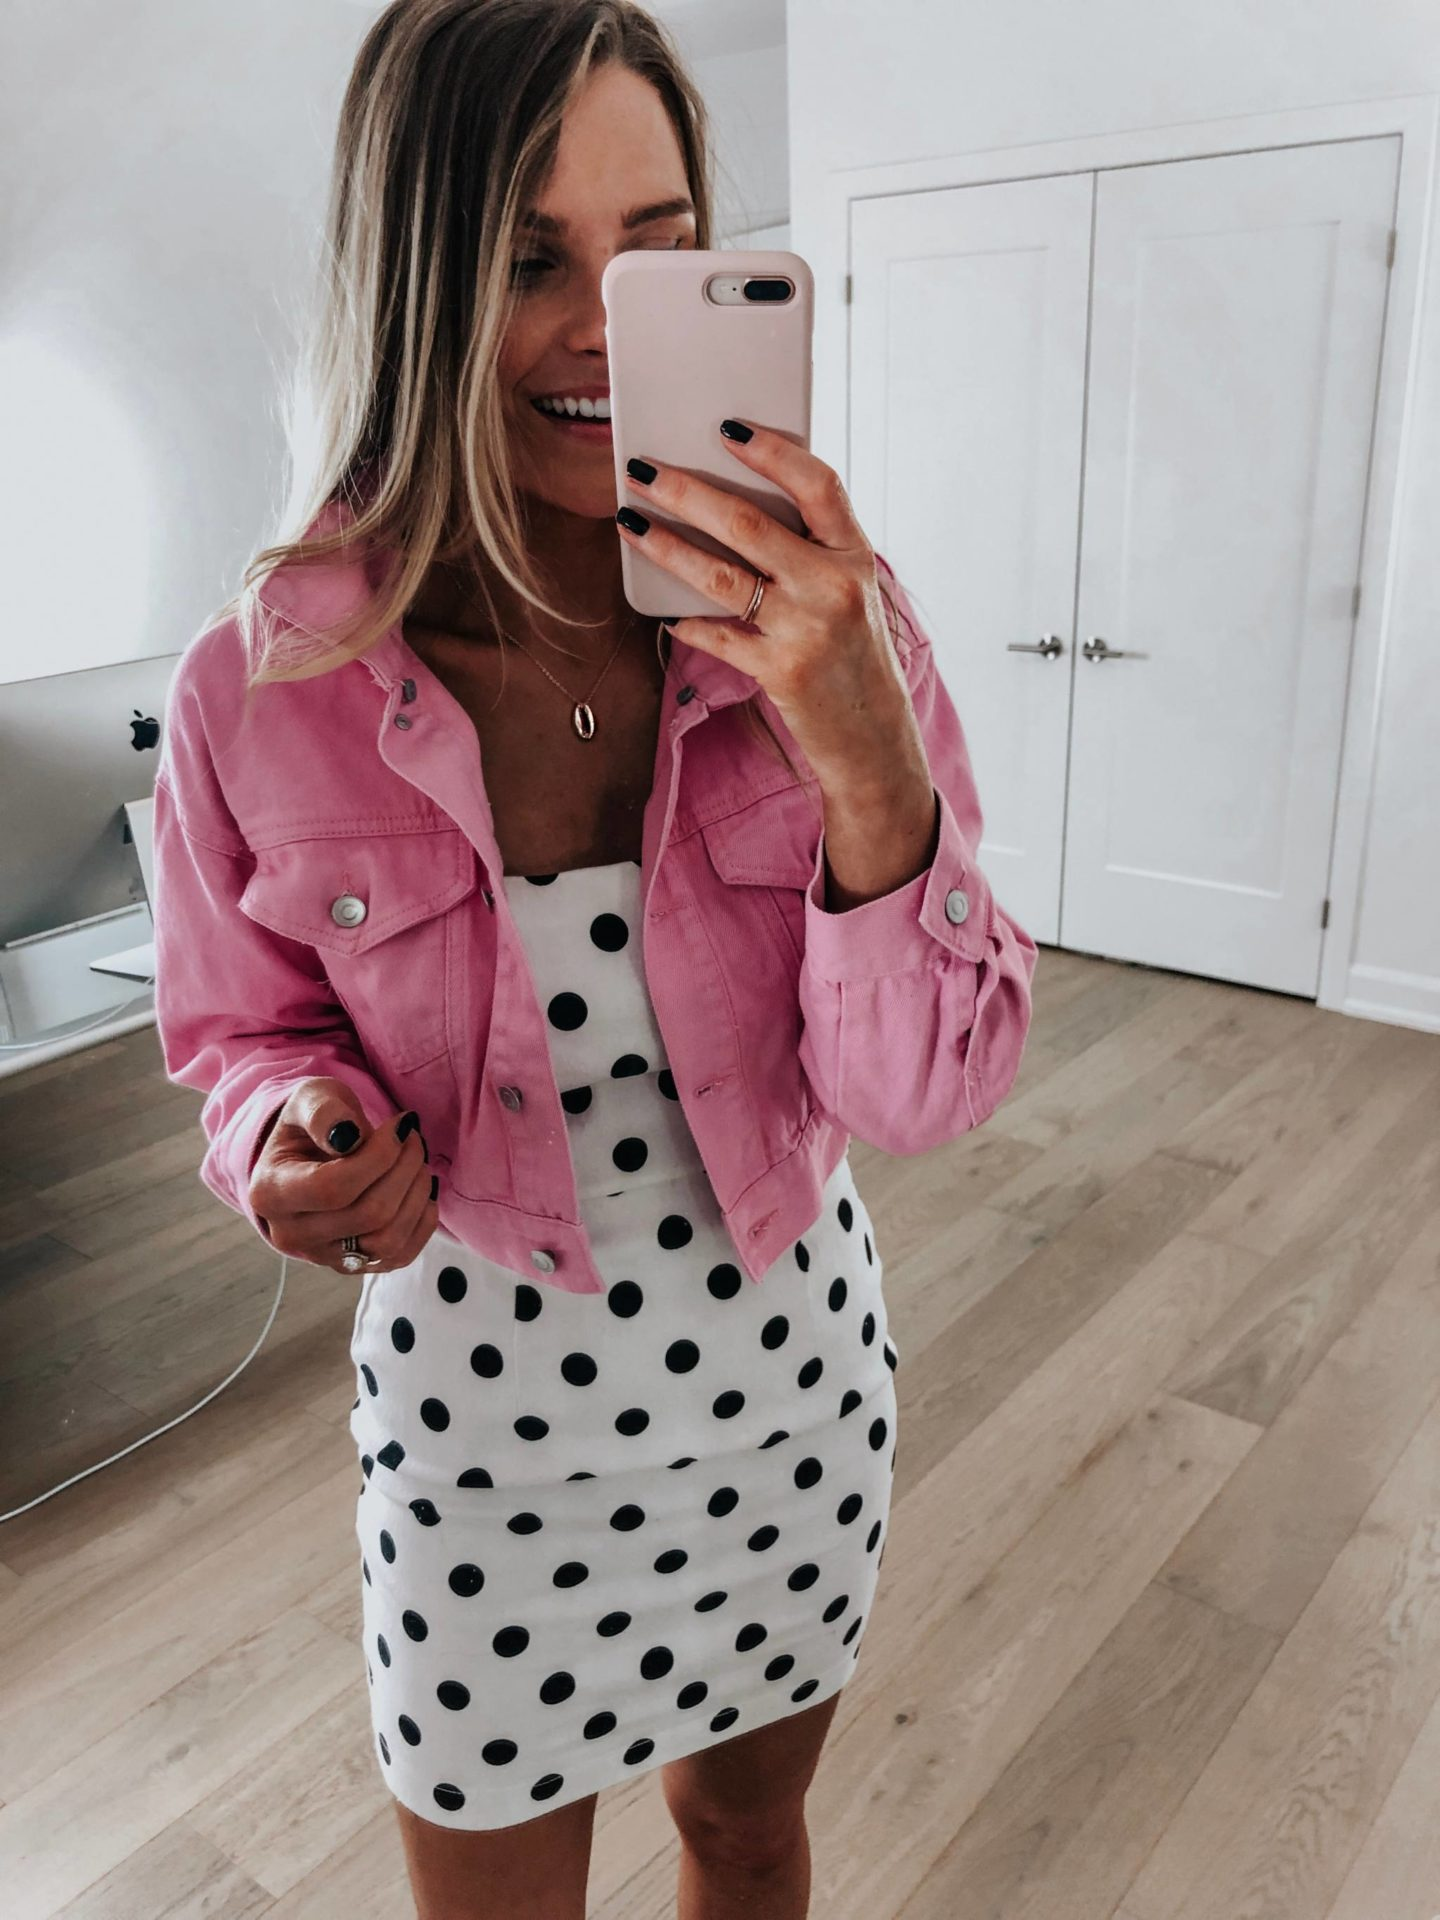 3e723adfc0e PINK CROPPED DENIM JACKET | F21 POLKA DOT DRESS — CAN'T FIND ONLINE YET,  BUT BRAND NEW (ALMOST IDENTICAL, STRIPED VERSION) | SHELL NECKLACE |  SNEAKERS